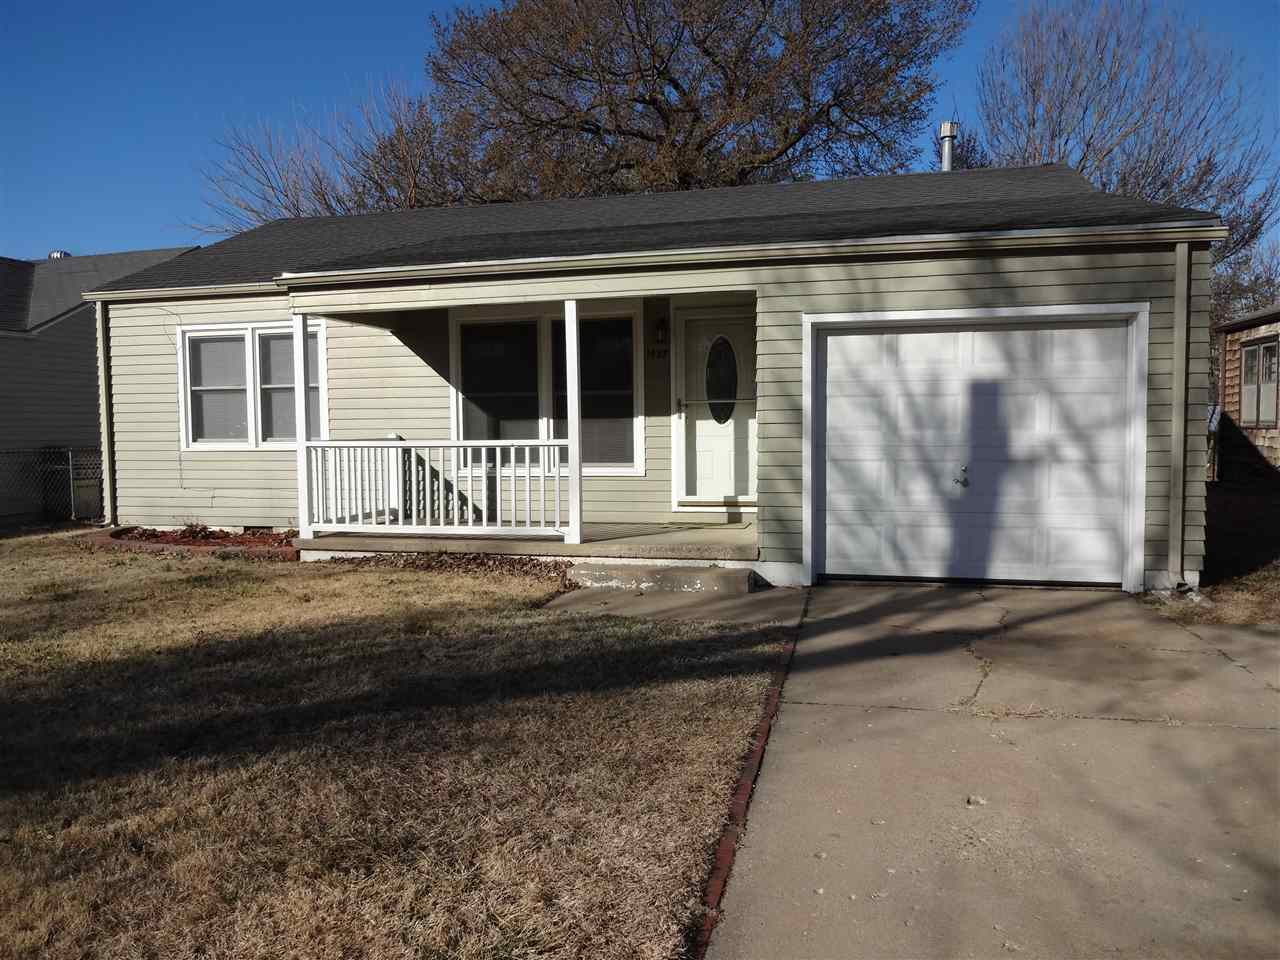 Come see this great home in University Heights.  It will be a great buy for a first time home buyer